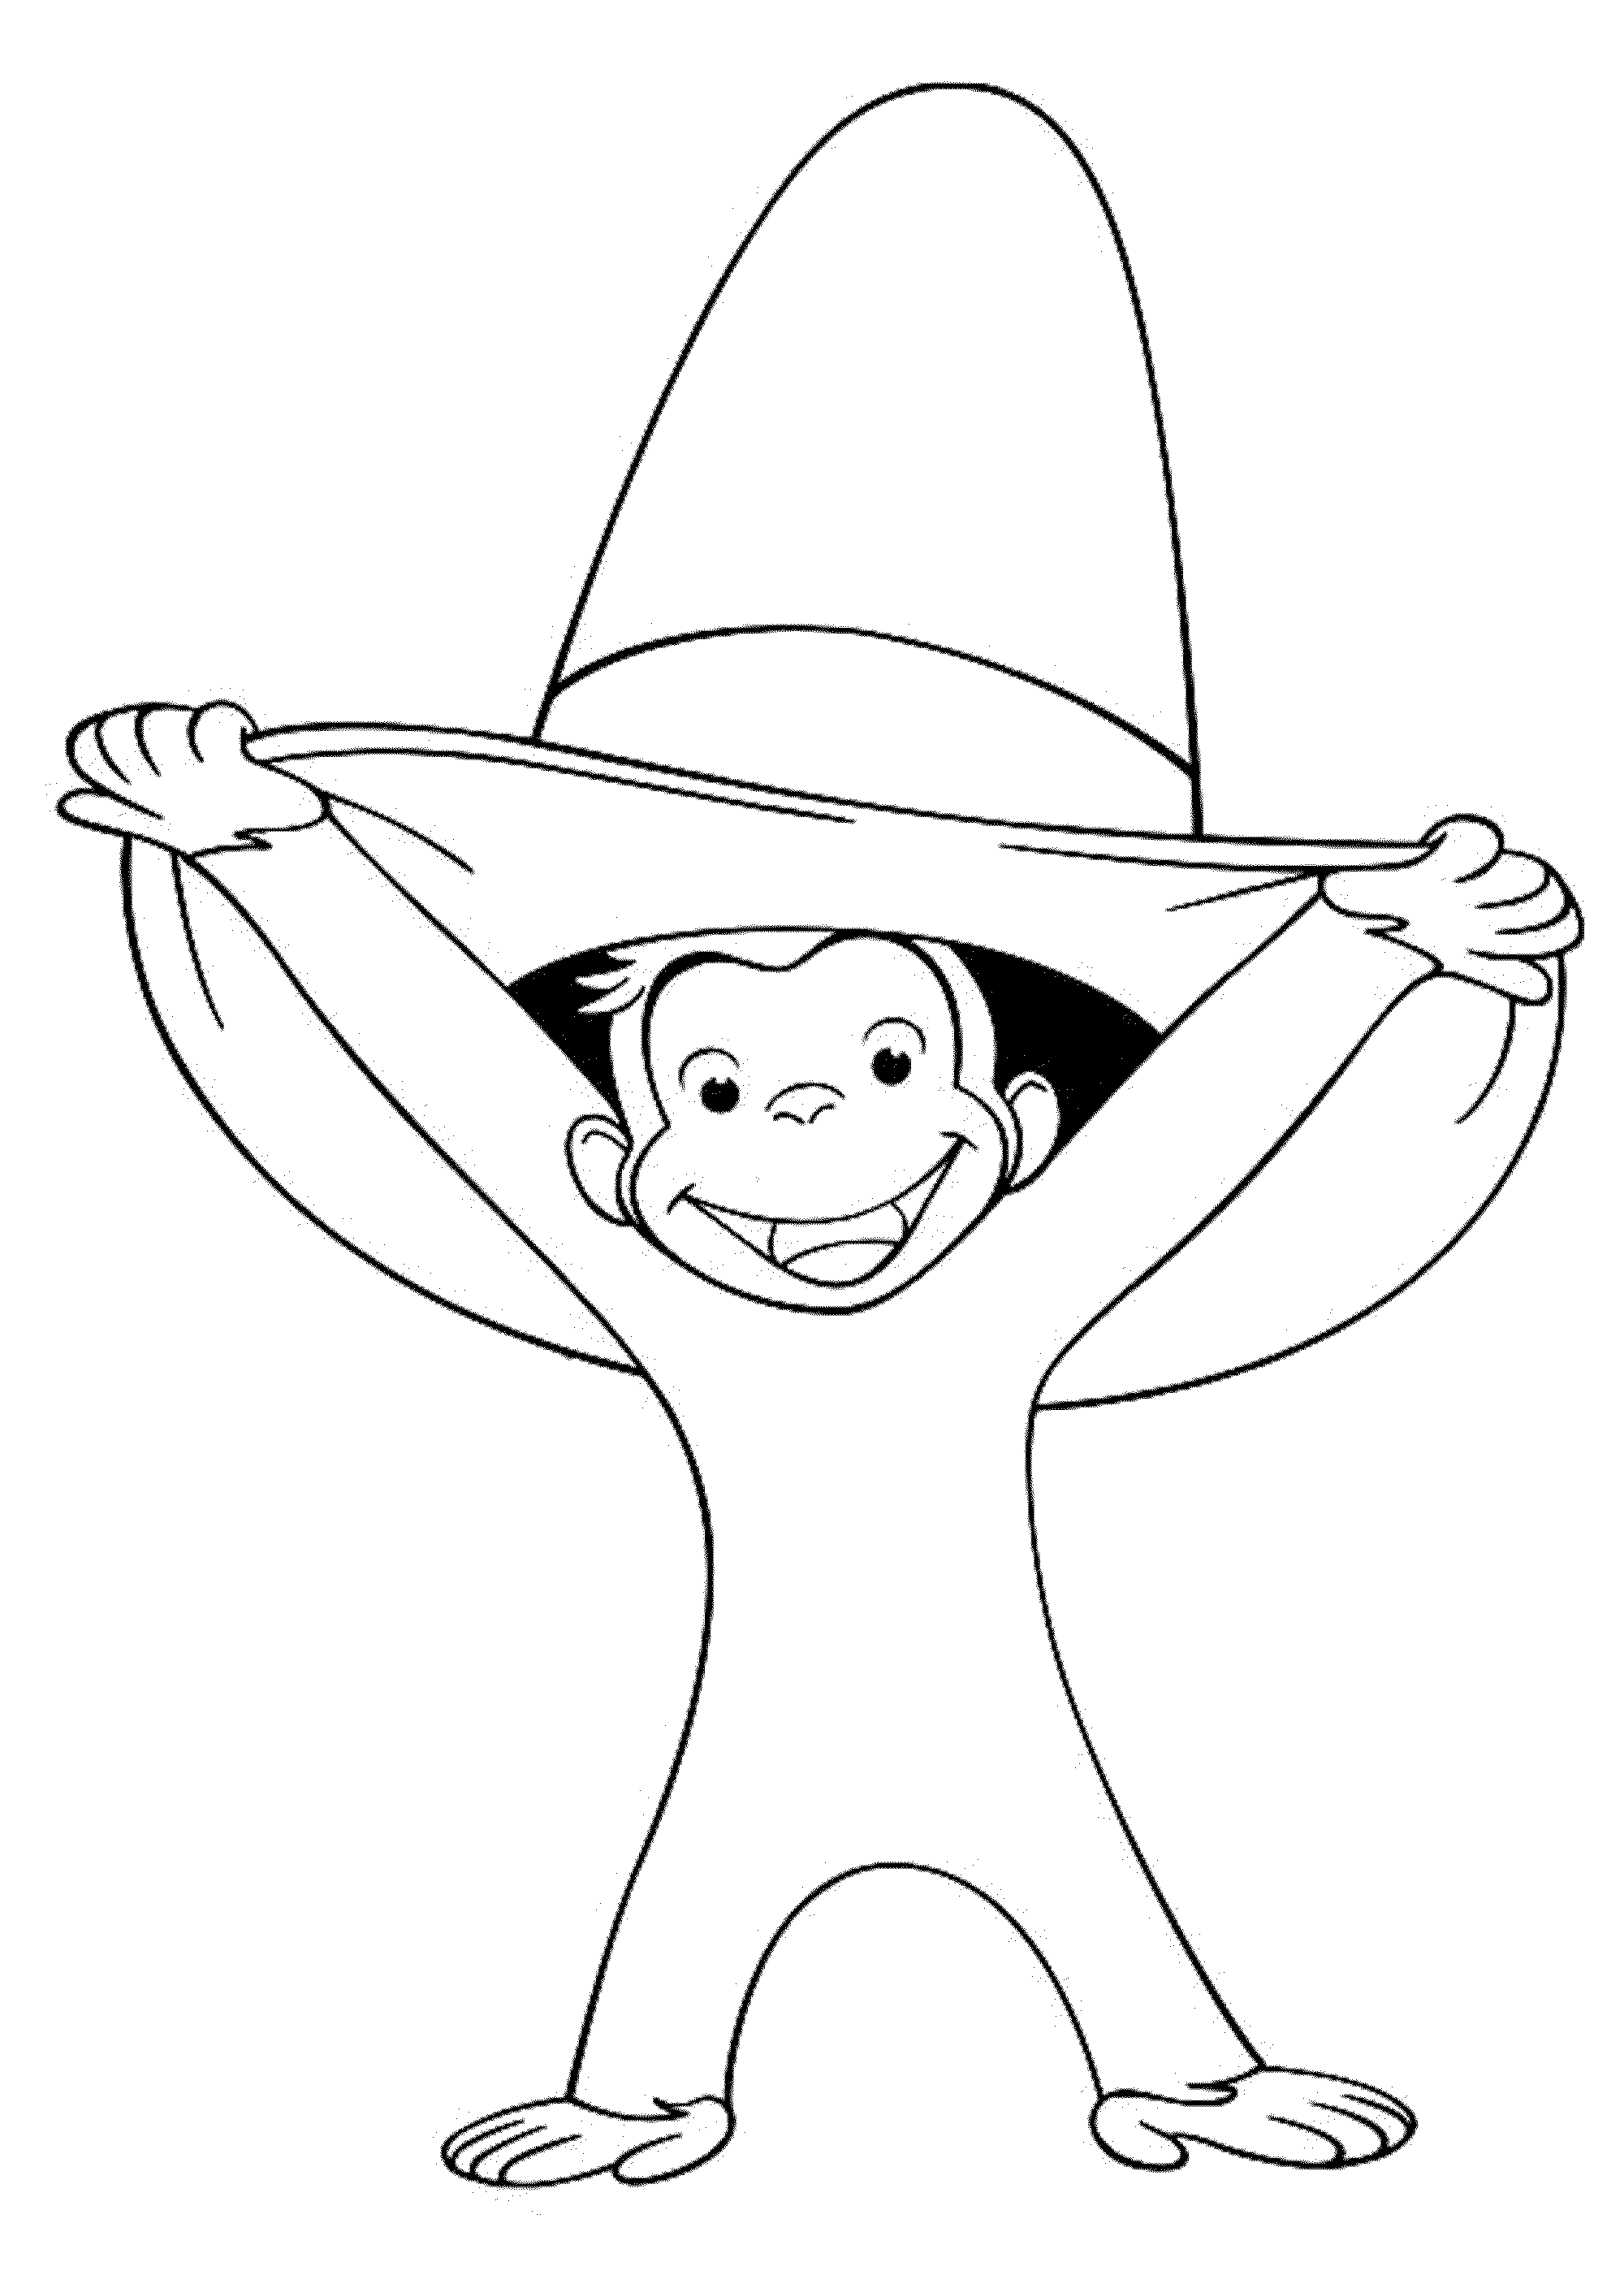 Curious george yellow hat man clipart black and white clipart freeuse stock Curious George Coloring Pages to Stimulate Kids\' Fine Motor ... clipart freeuse stock